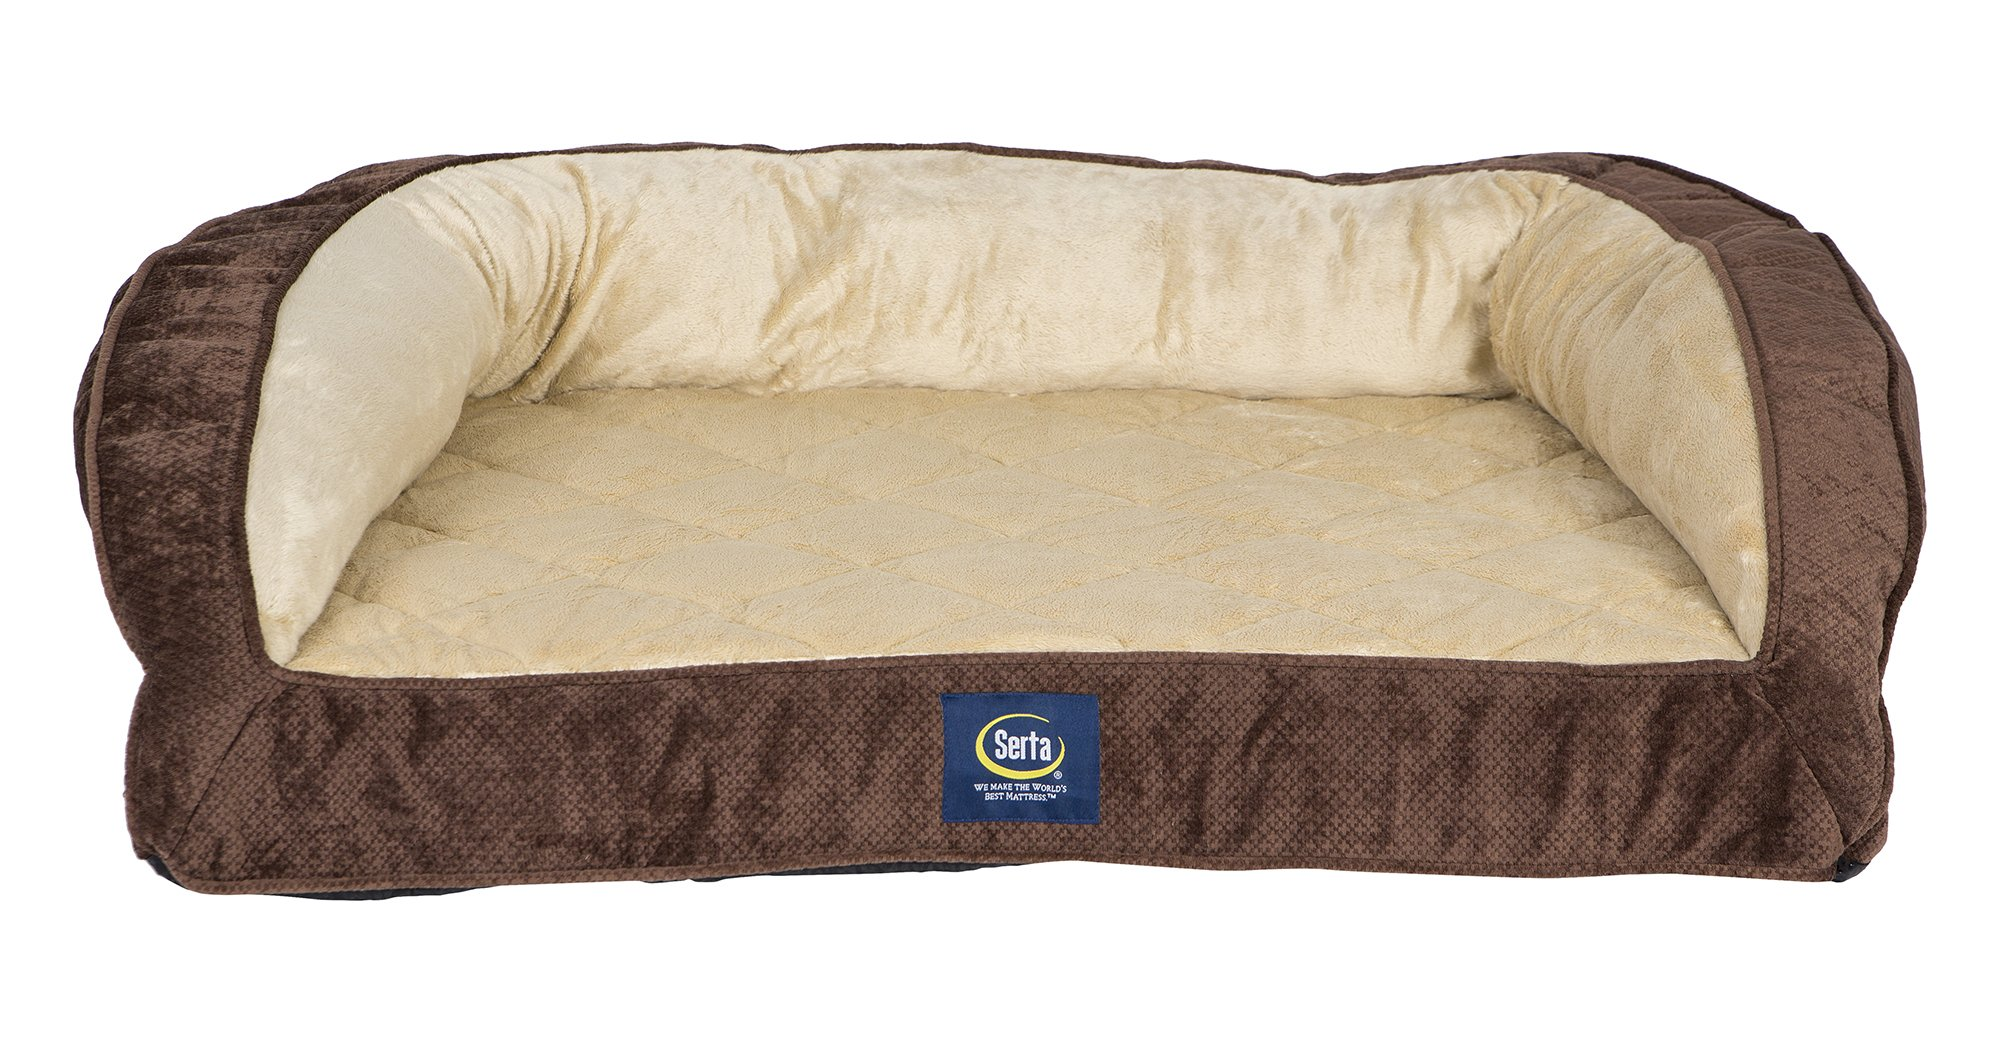 Serta Orthopedic Quilted Couch Mocha Large